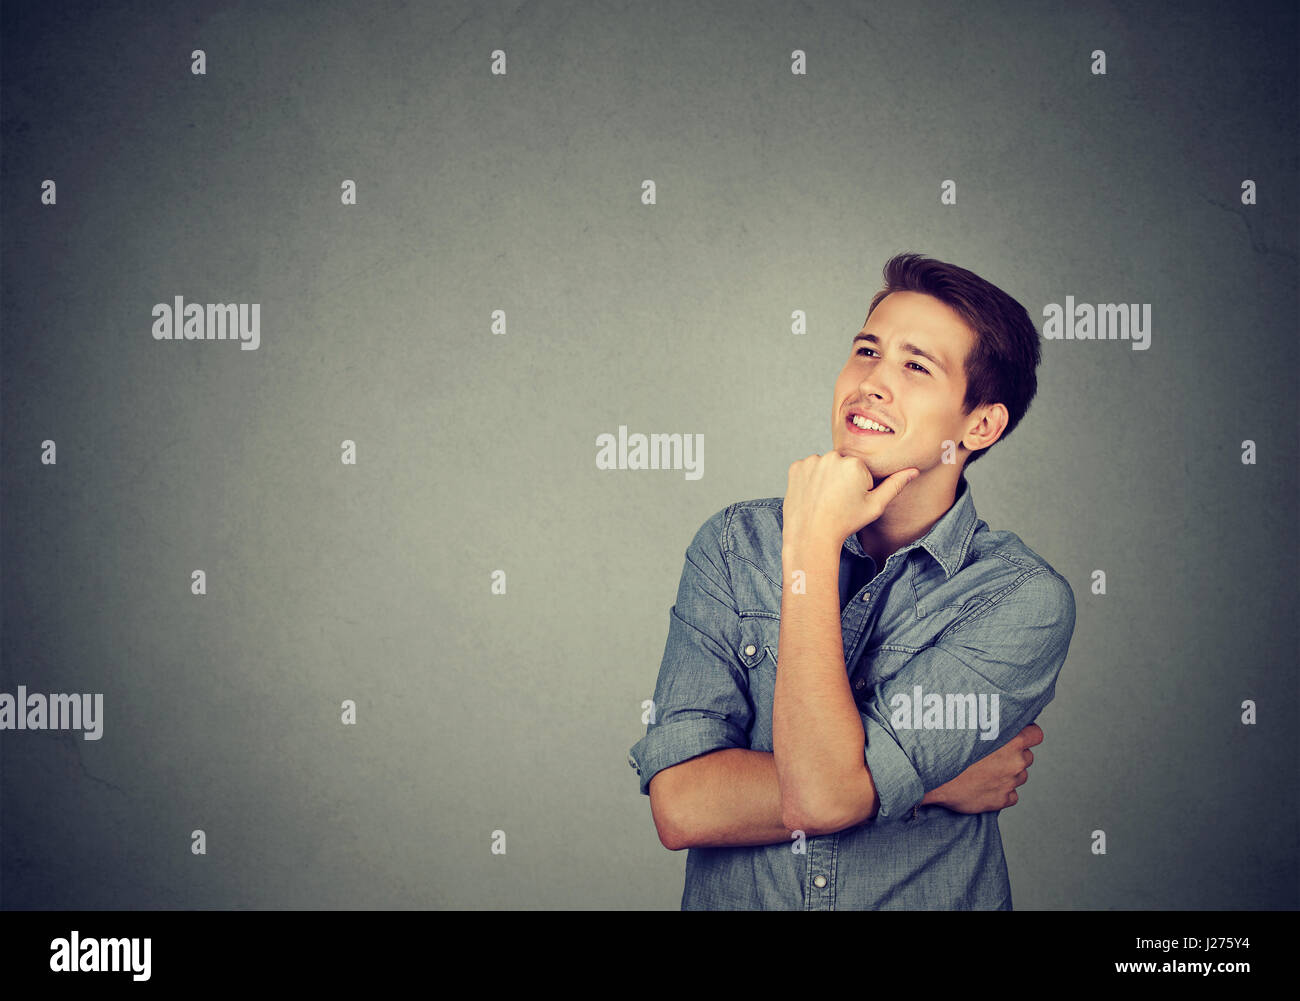 Happy young man thinking daydreaming looking up isolated on gray wall background - Stock Image